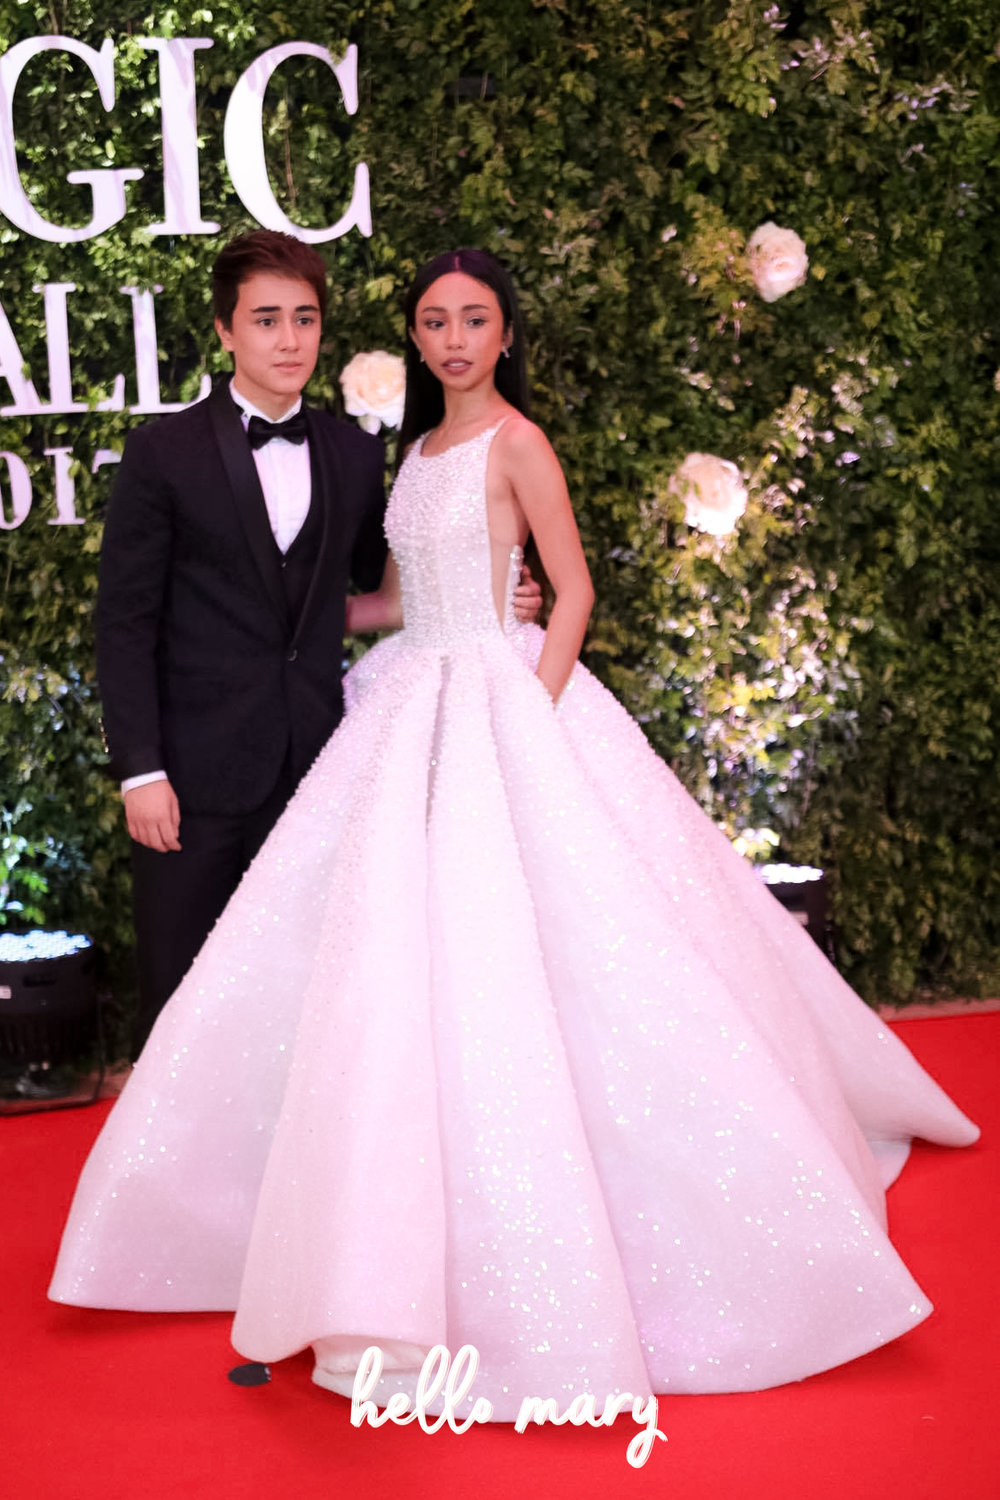 MayWard - Goodness, Maymay looks so pretty! Her gown suits her well. Of course Edward looks dashing too.